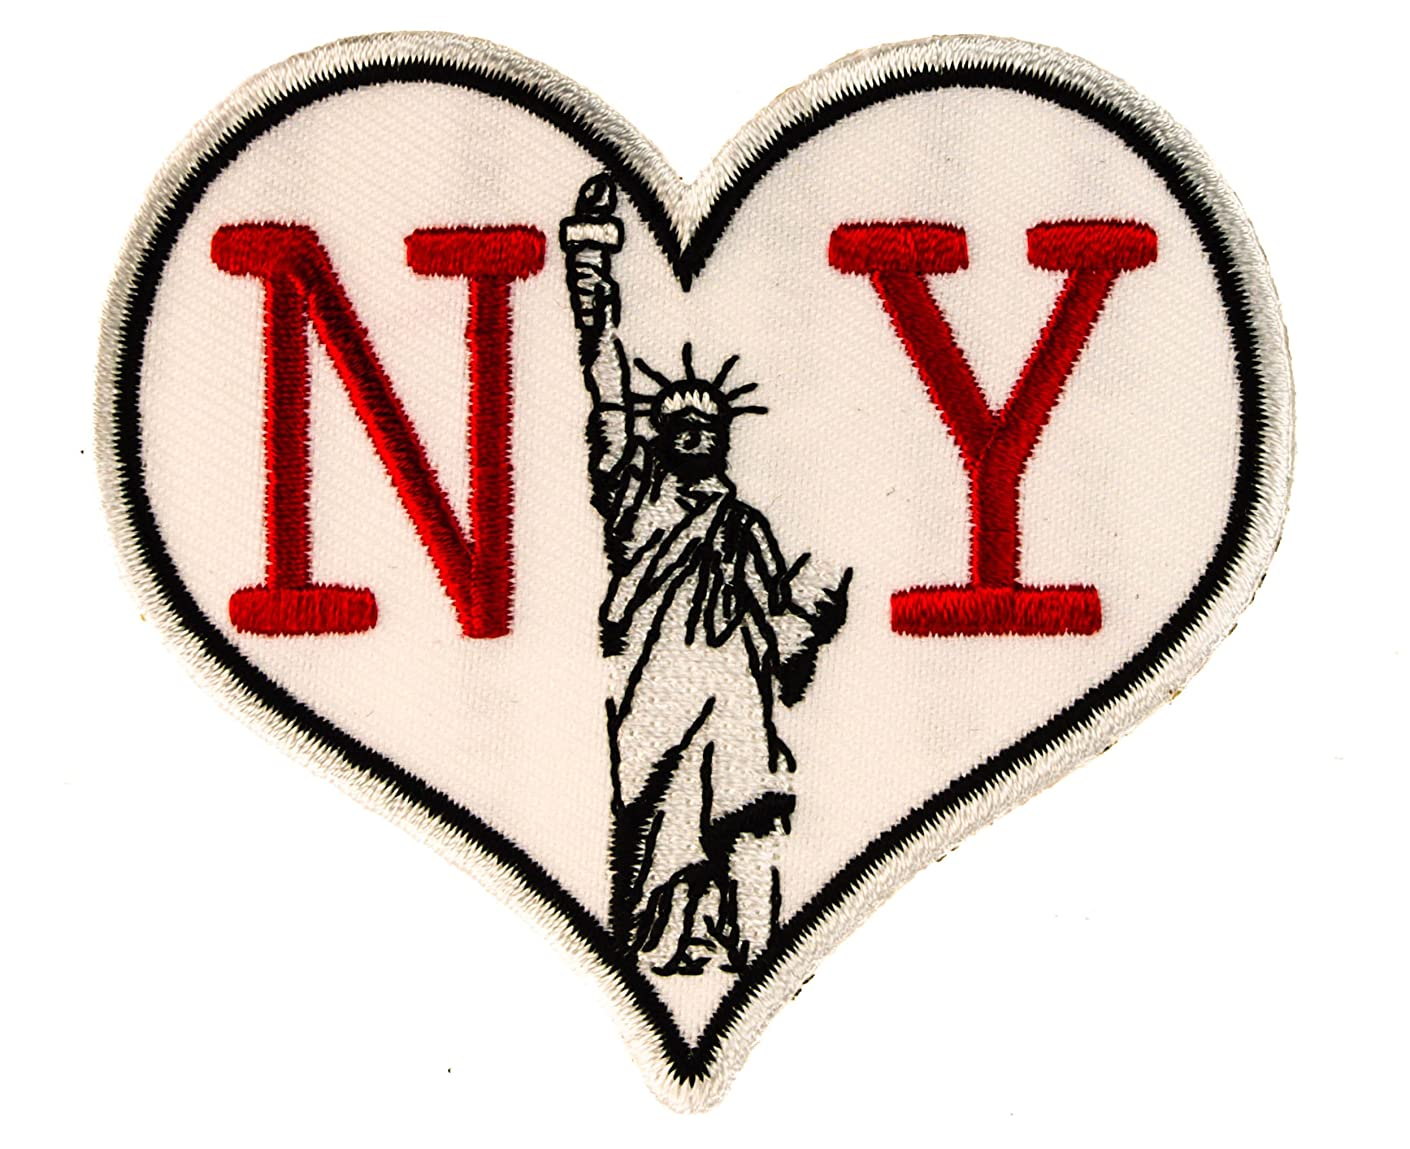 LOVE New York 3 Inch Iron or Sew on Biker Patch